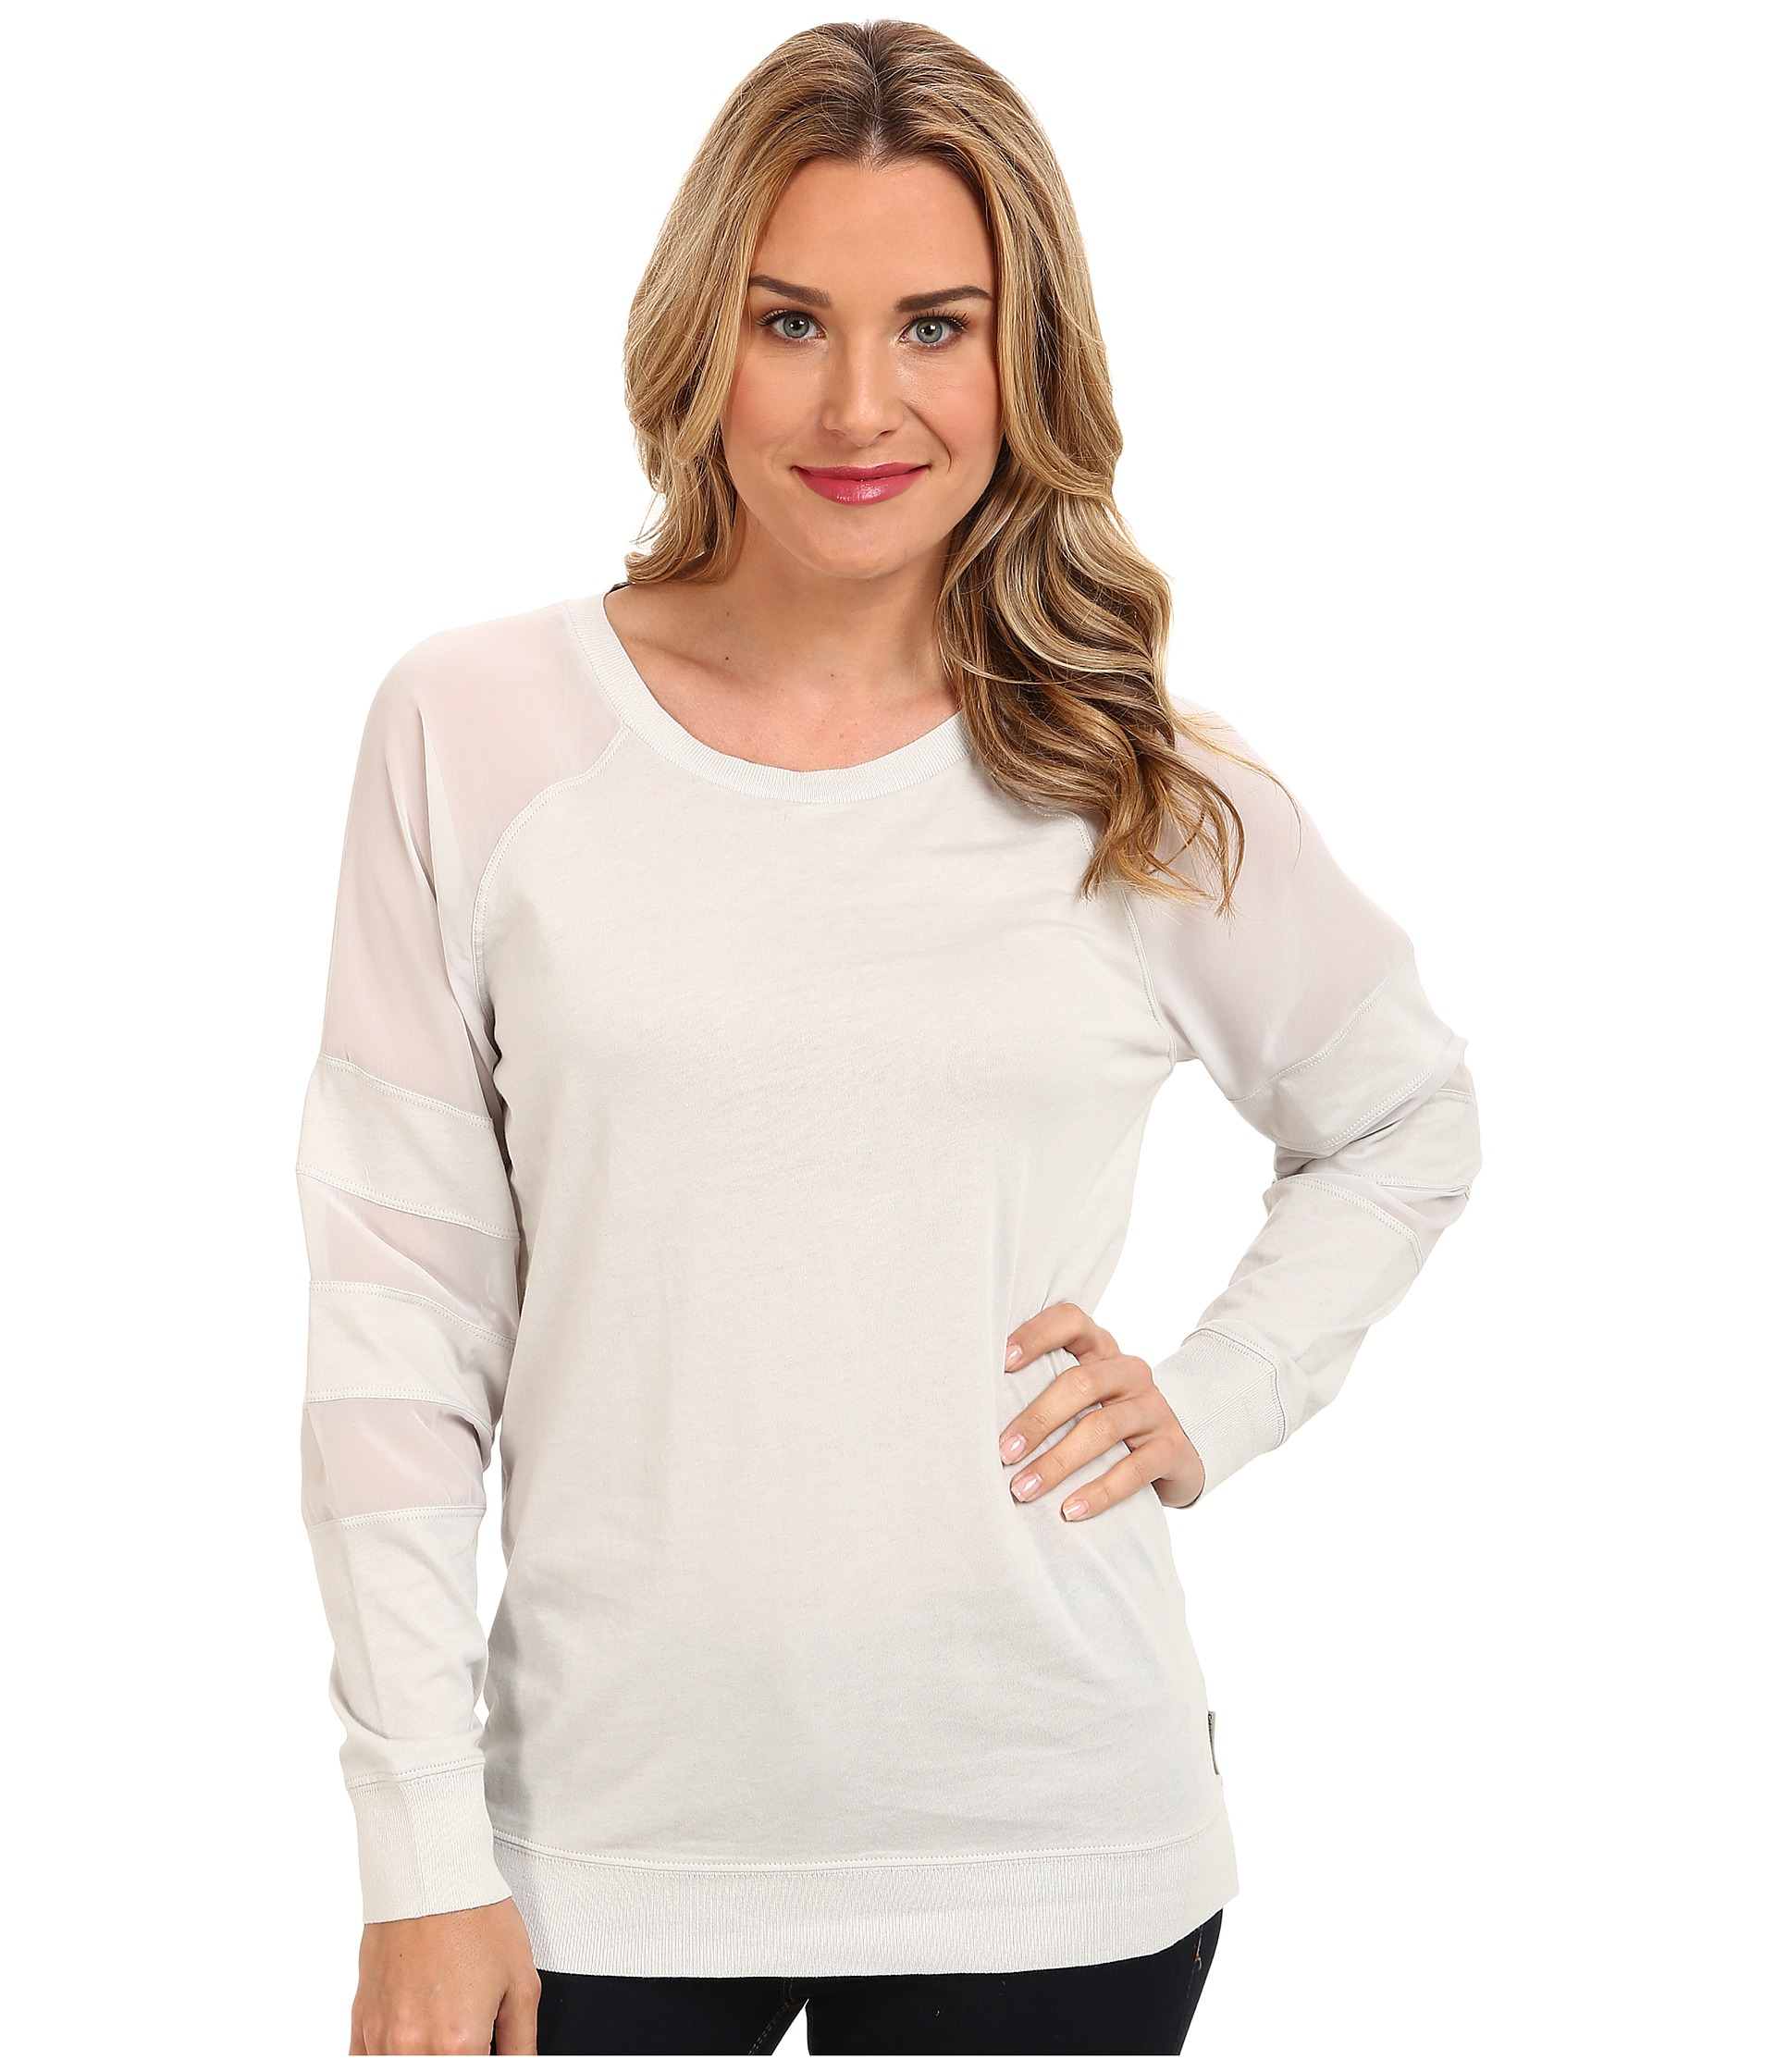 Calvin Klein Jeans Sheer Mix Sweat Top $29.99 (54% off MSRP $65.00